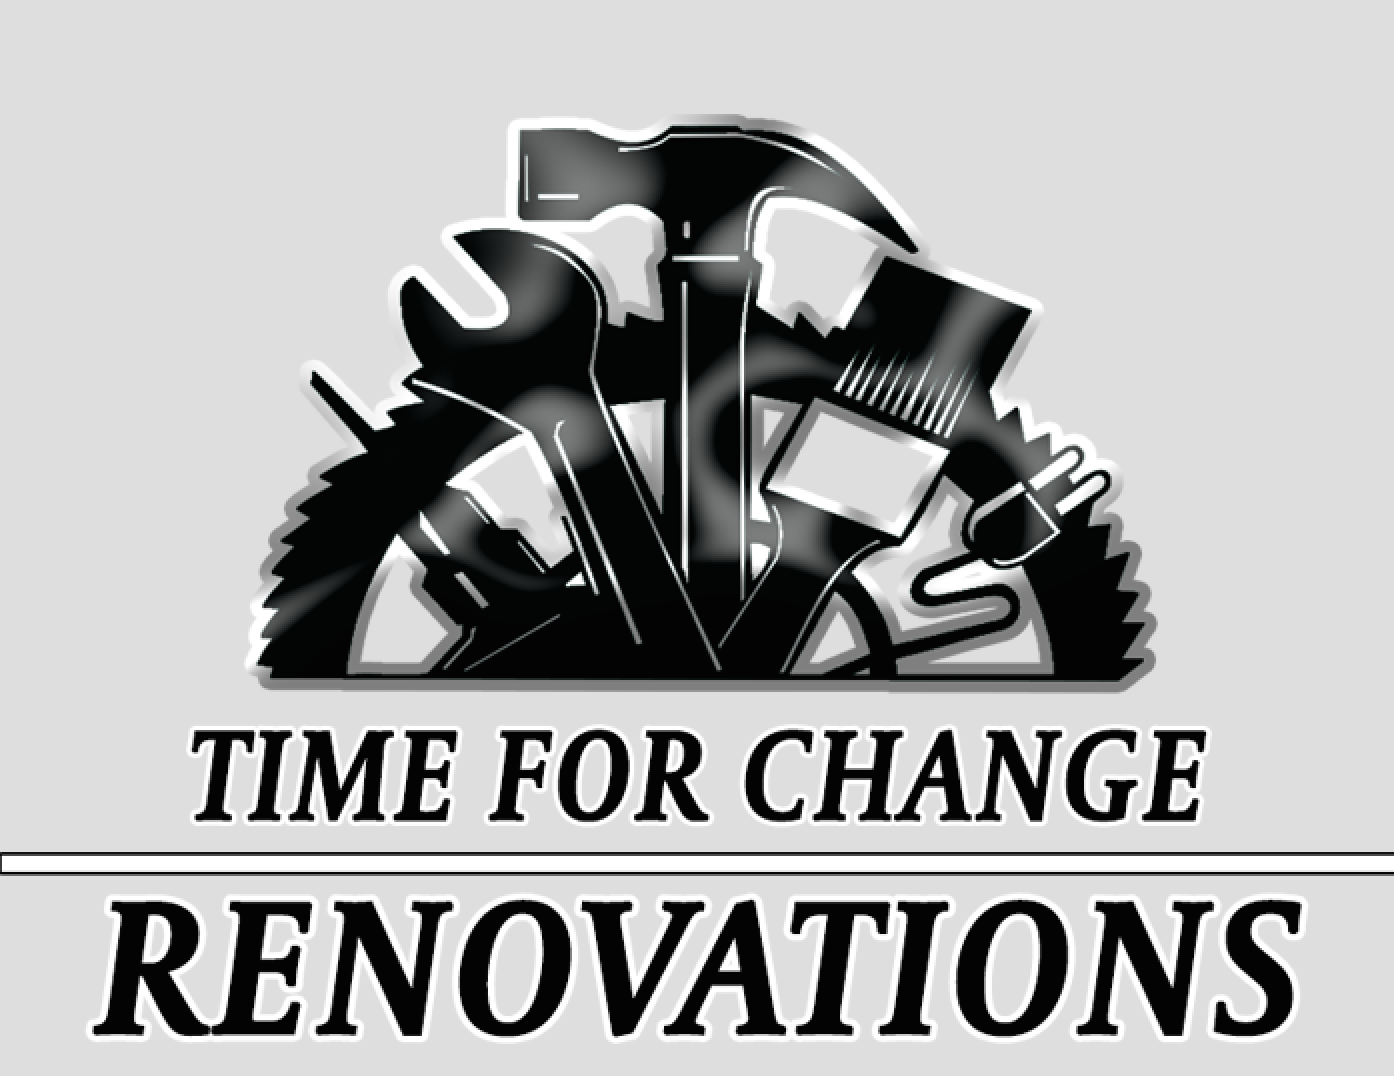 Time for Change Renovations